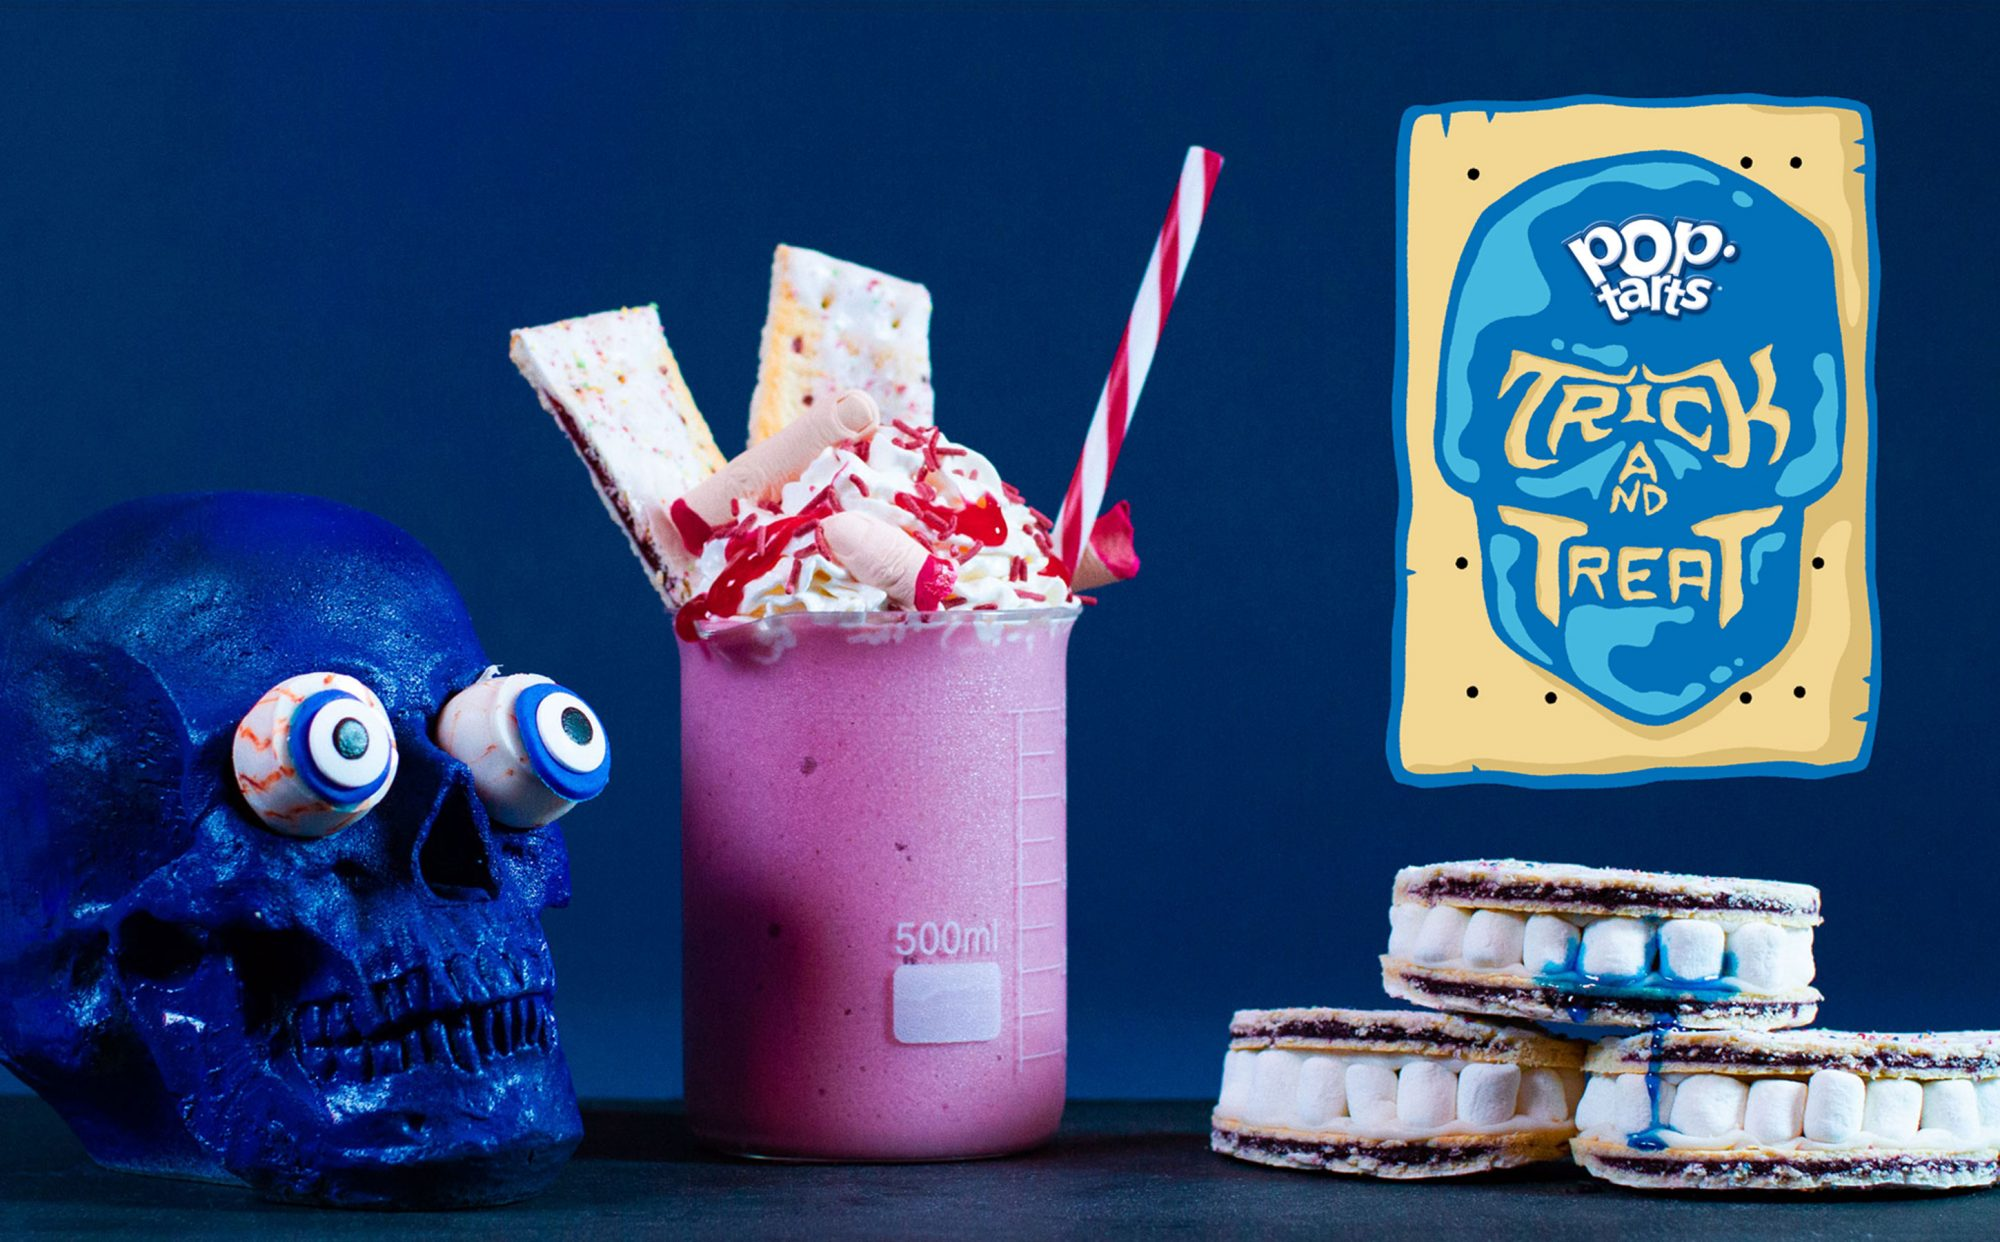 Everything on This Halloween Menu Is Made of Pop-Tarts